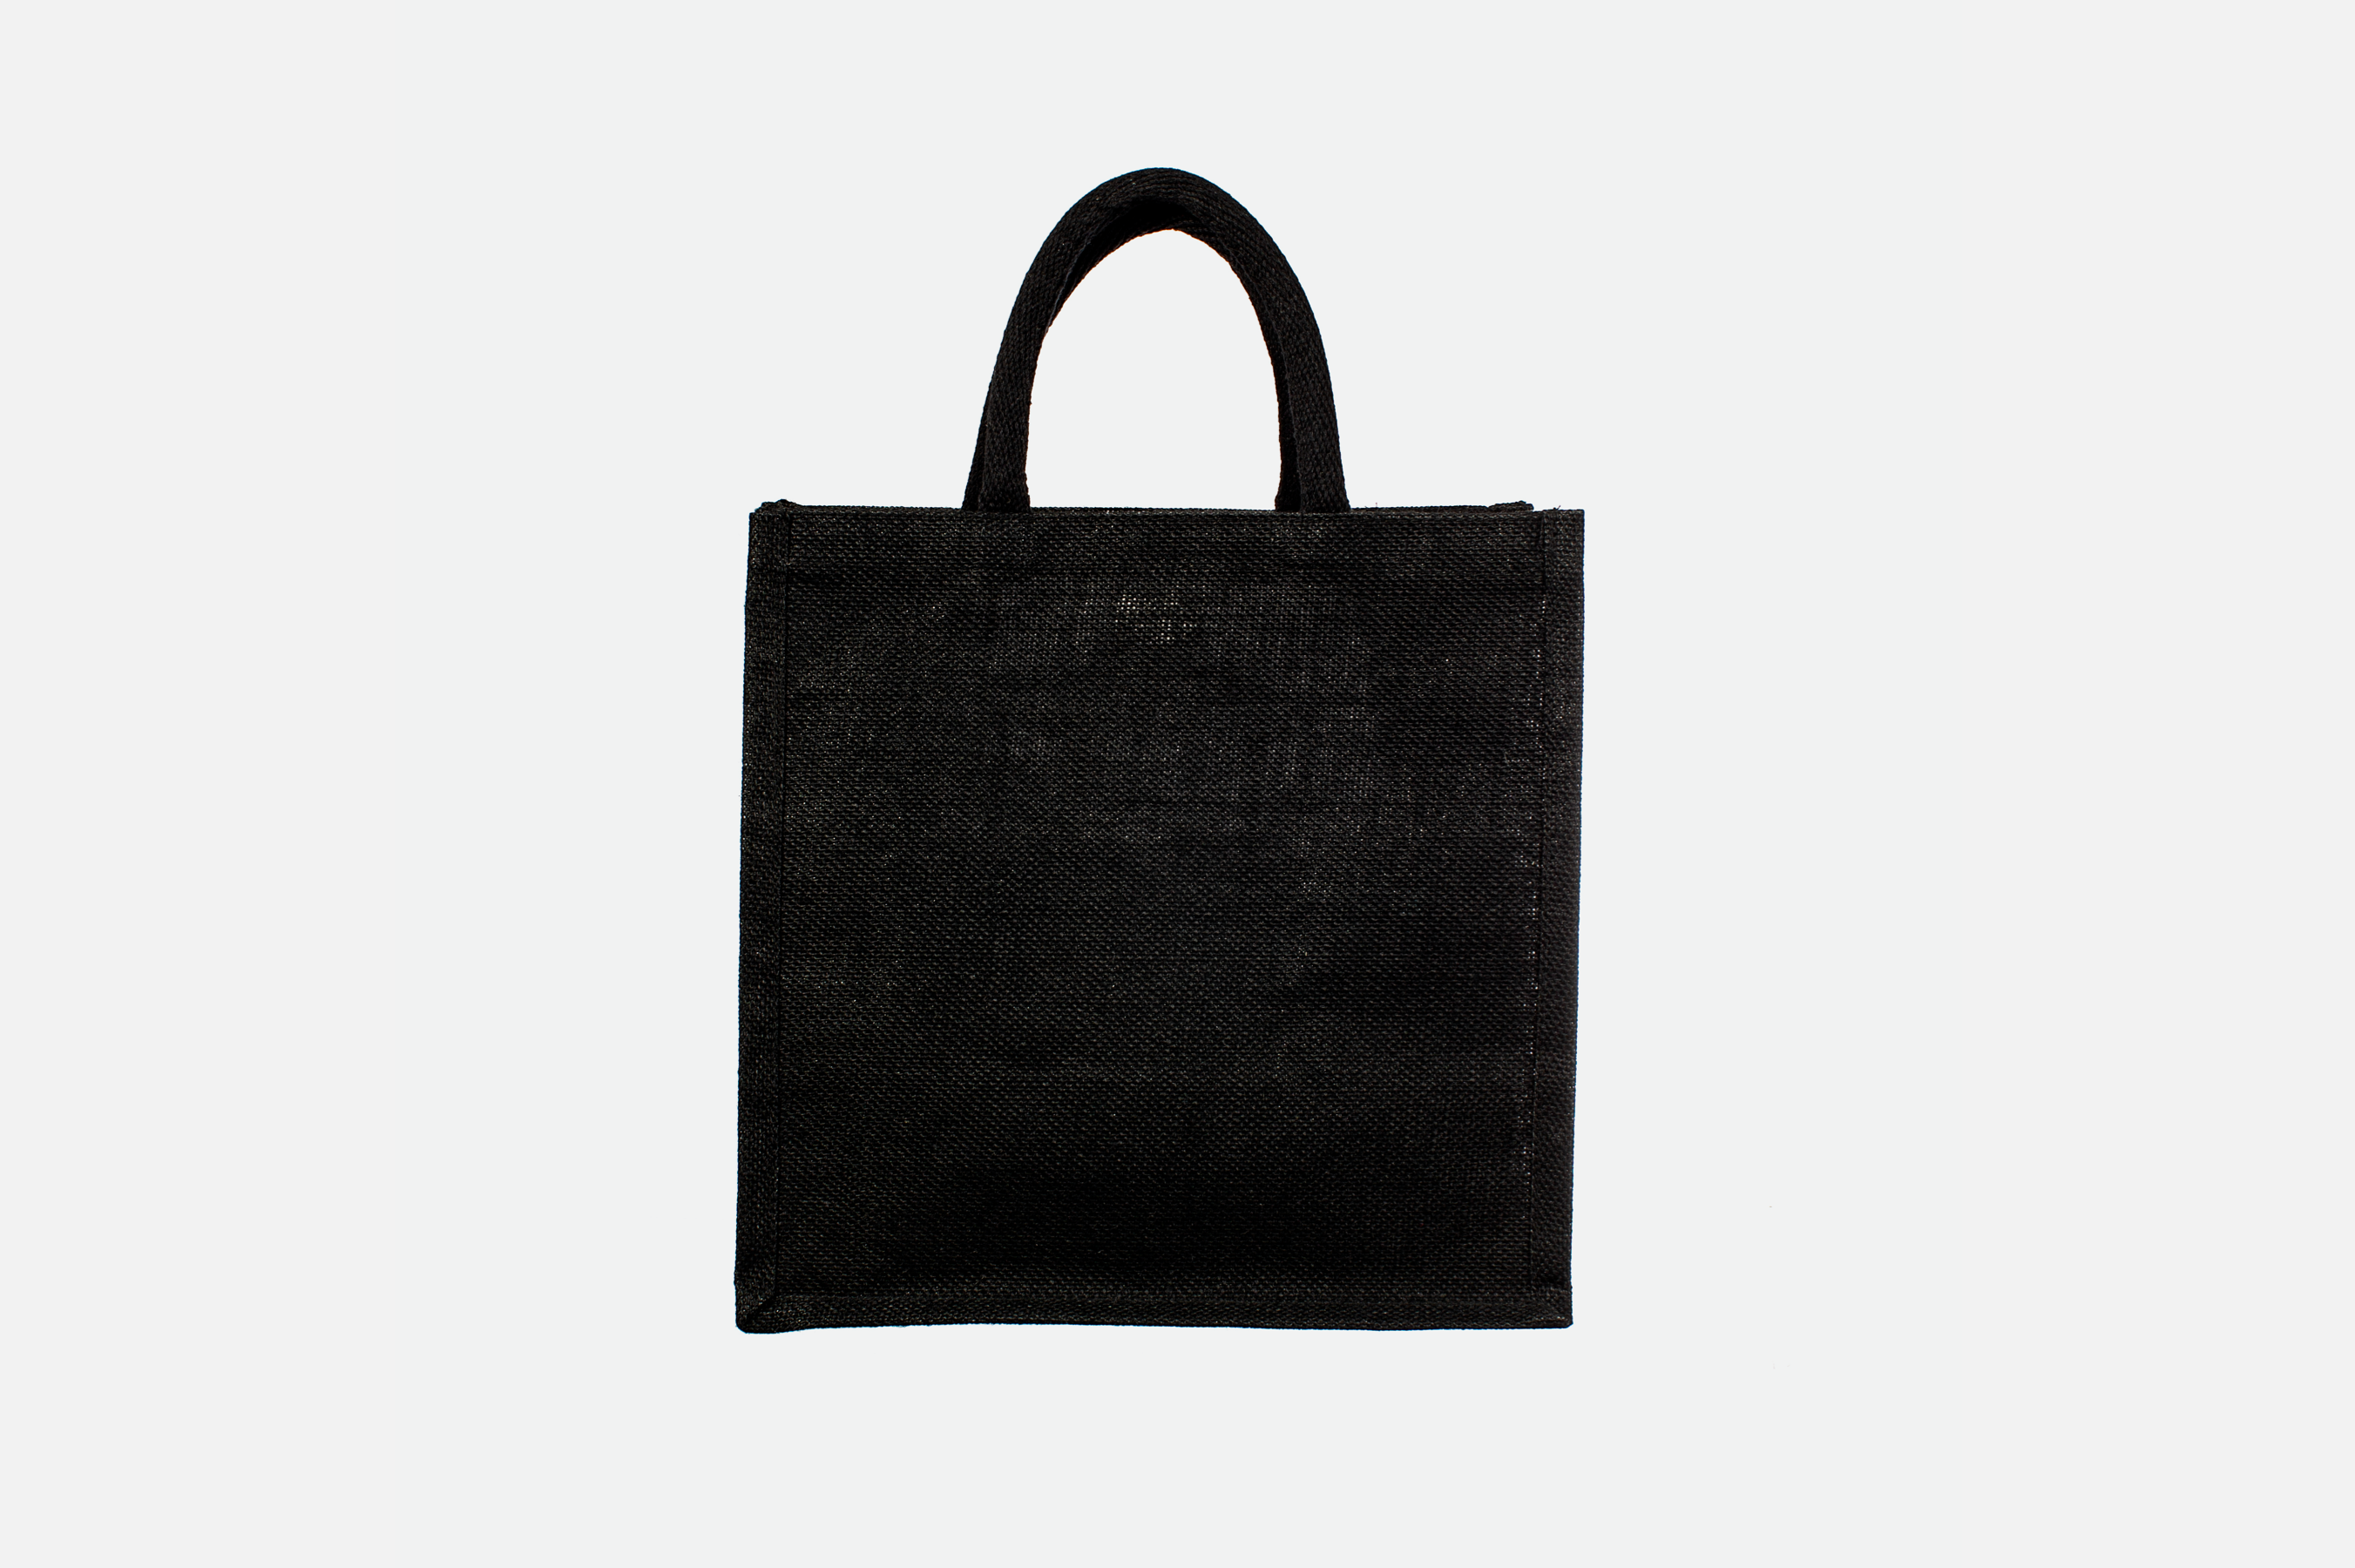 Emmerdale Tote Bag - Small